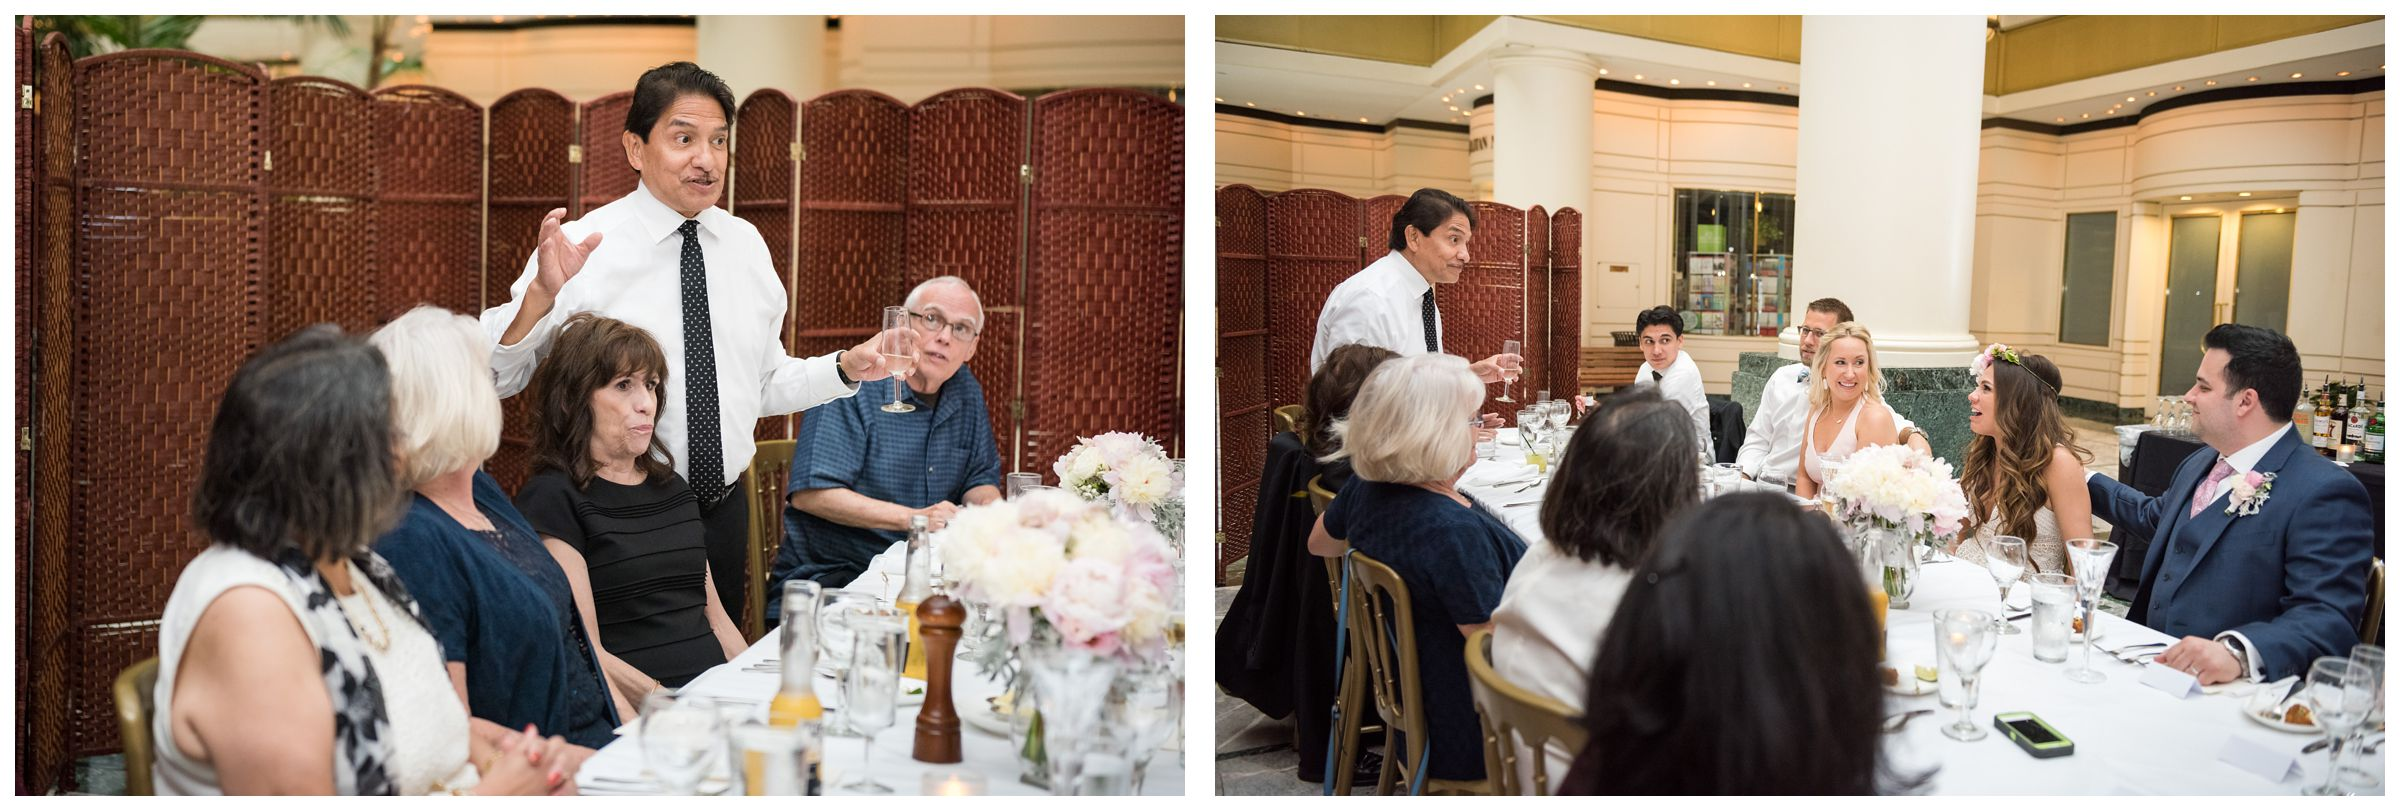 father of the bride giving toast during intimate wedding reception dinner at Old Ebbitt Grill in Washington, D.C.